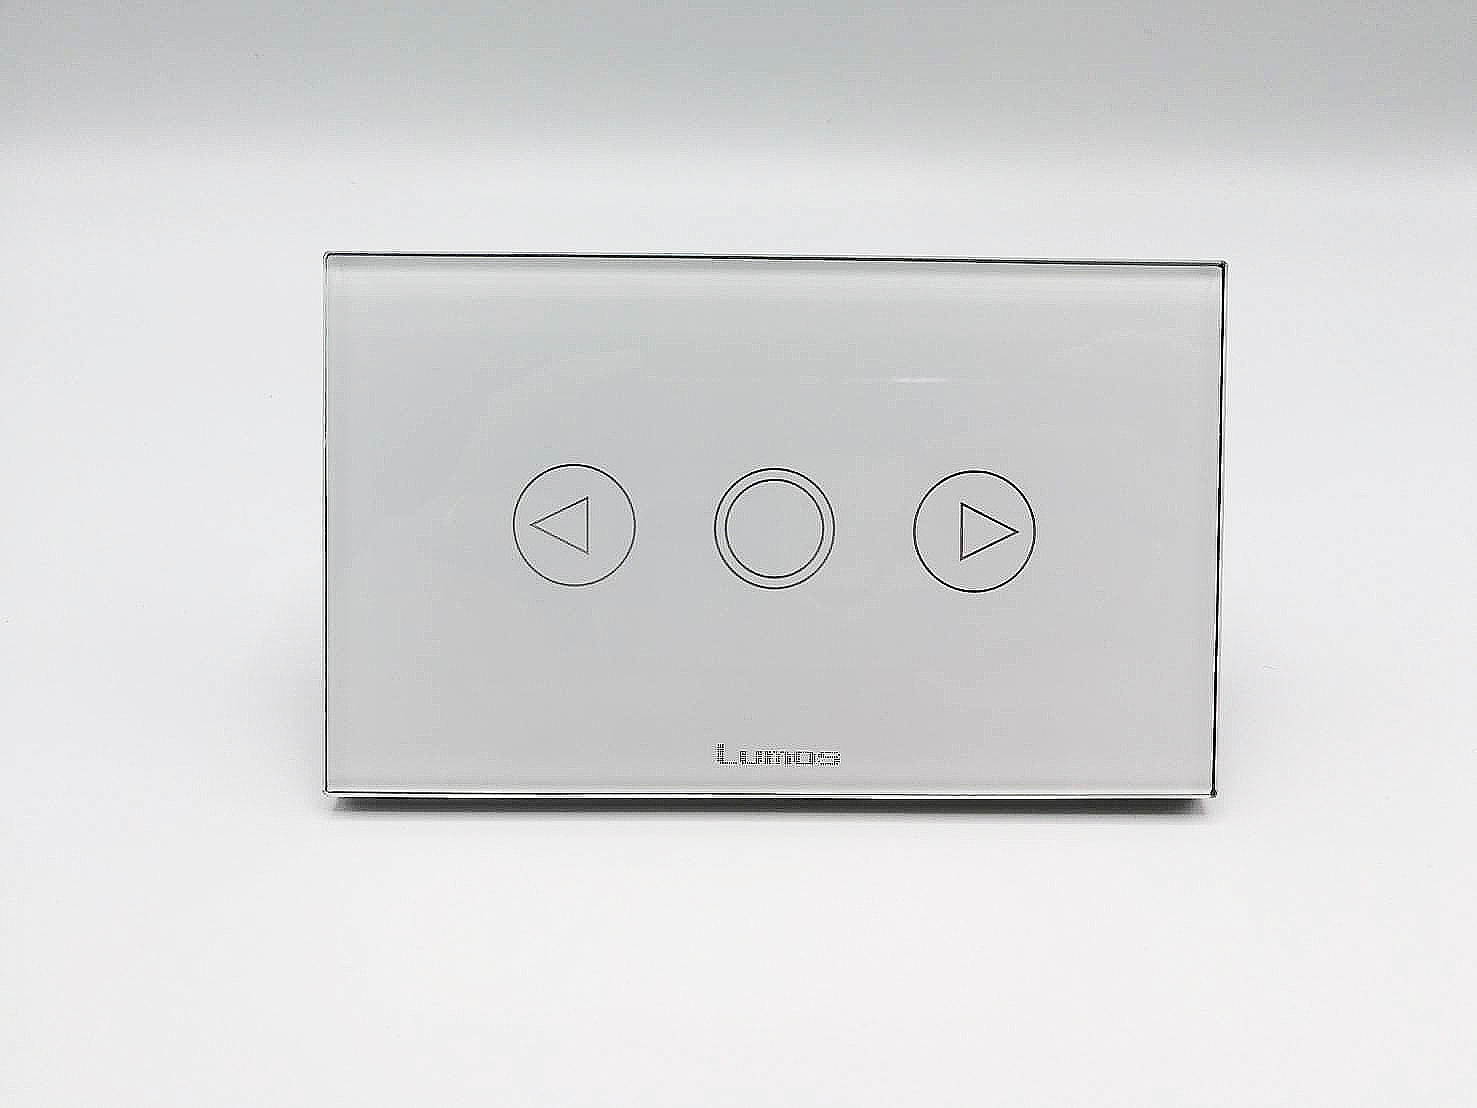 Rumos touch switch dimmer ไ้ระำ with remote function